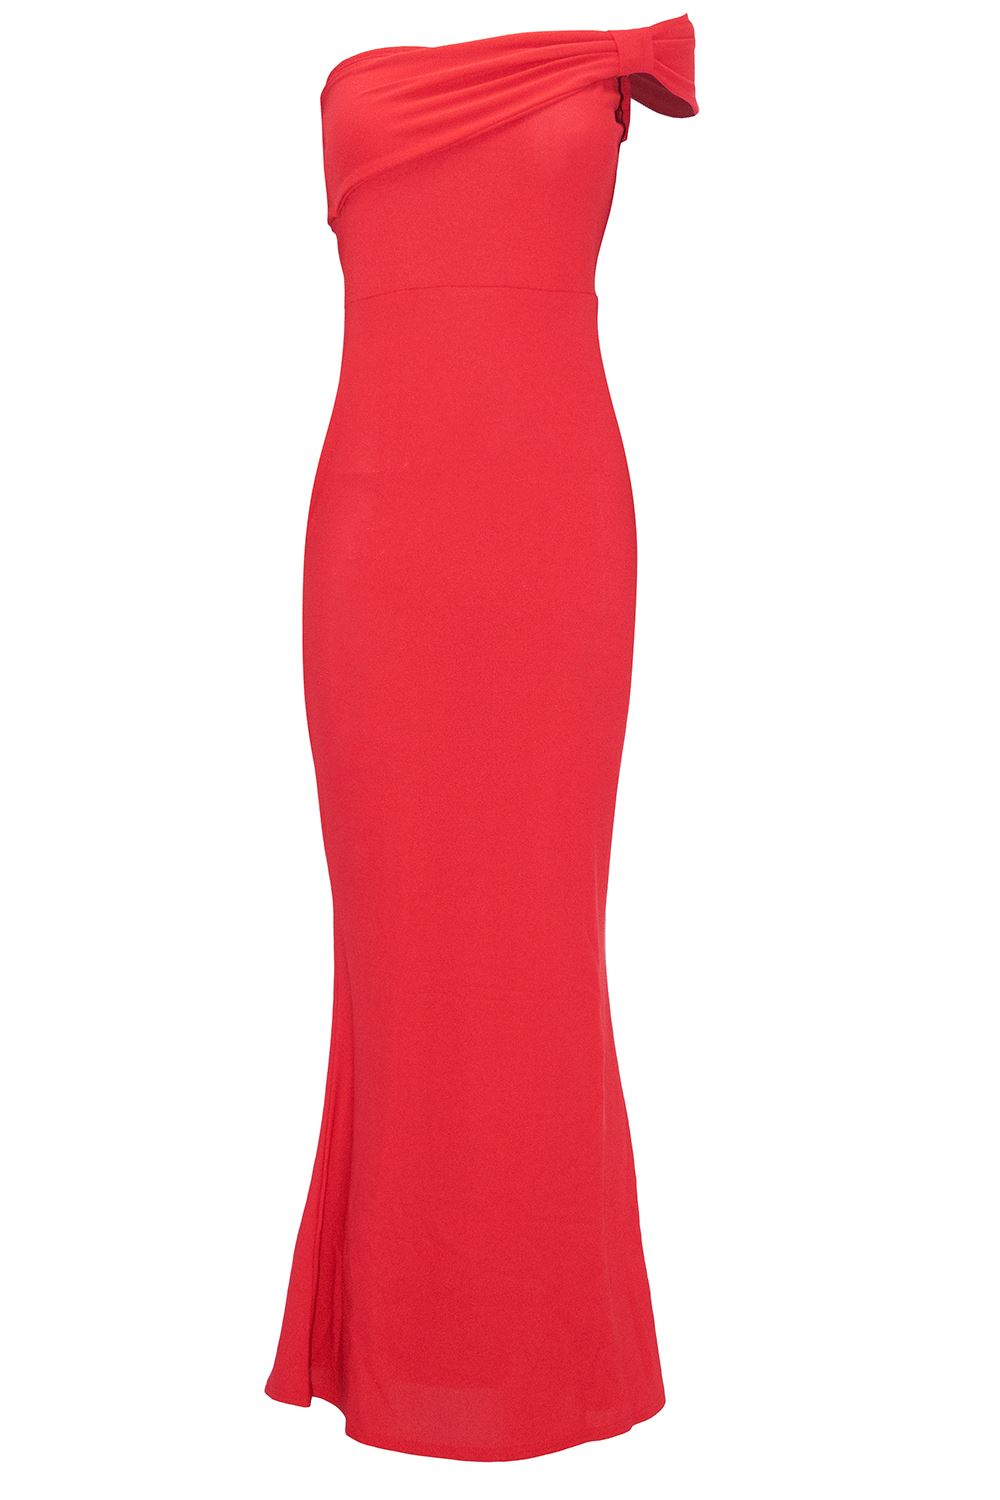 Womens-Ladies-Bow-Frill-Boobtube-Bandeue-Sleeveless-Strapless-Bodycon-Maxi-Dress